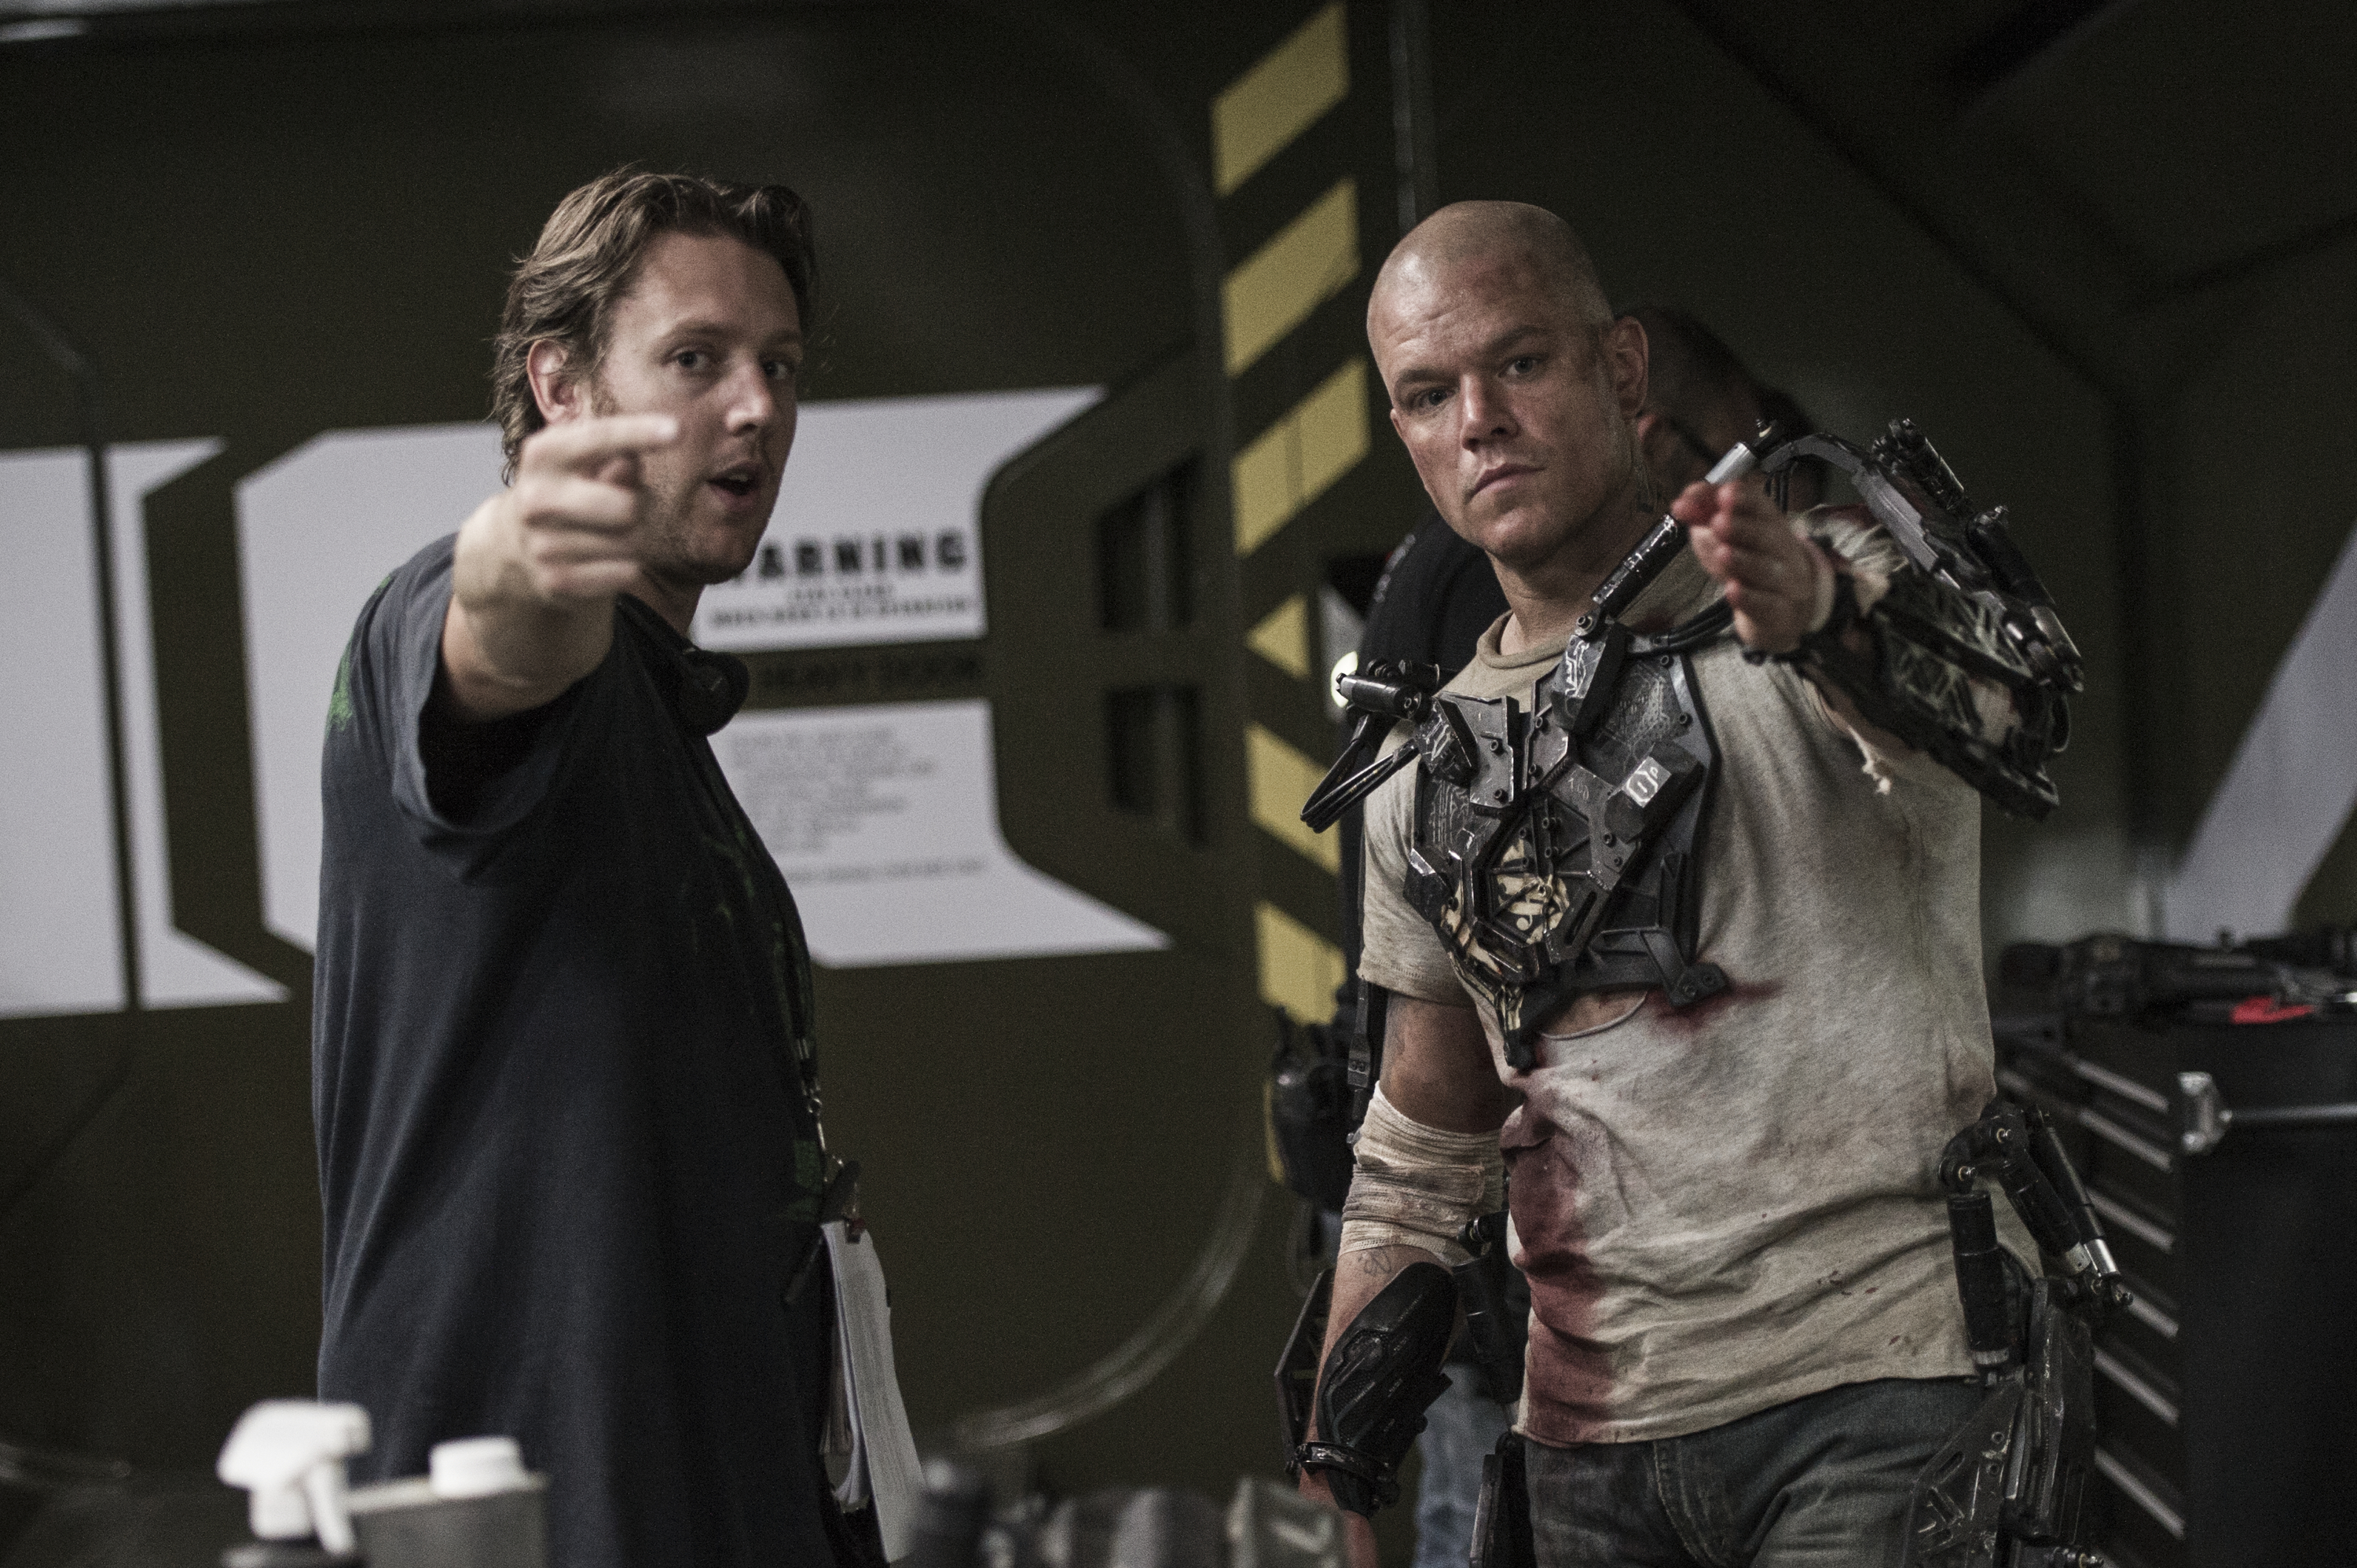 """a review of the film elysium by neil blomkamp But blomkamp seems fully at ease and in control from the earliest scenes of """"elysium,"""" which introduce us to a futuristic los angeles (circa 2154) that has, in one of the film's canniest ."""